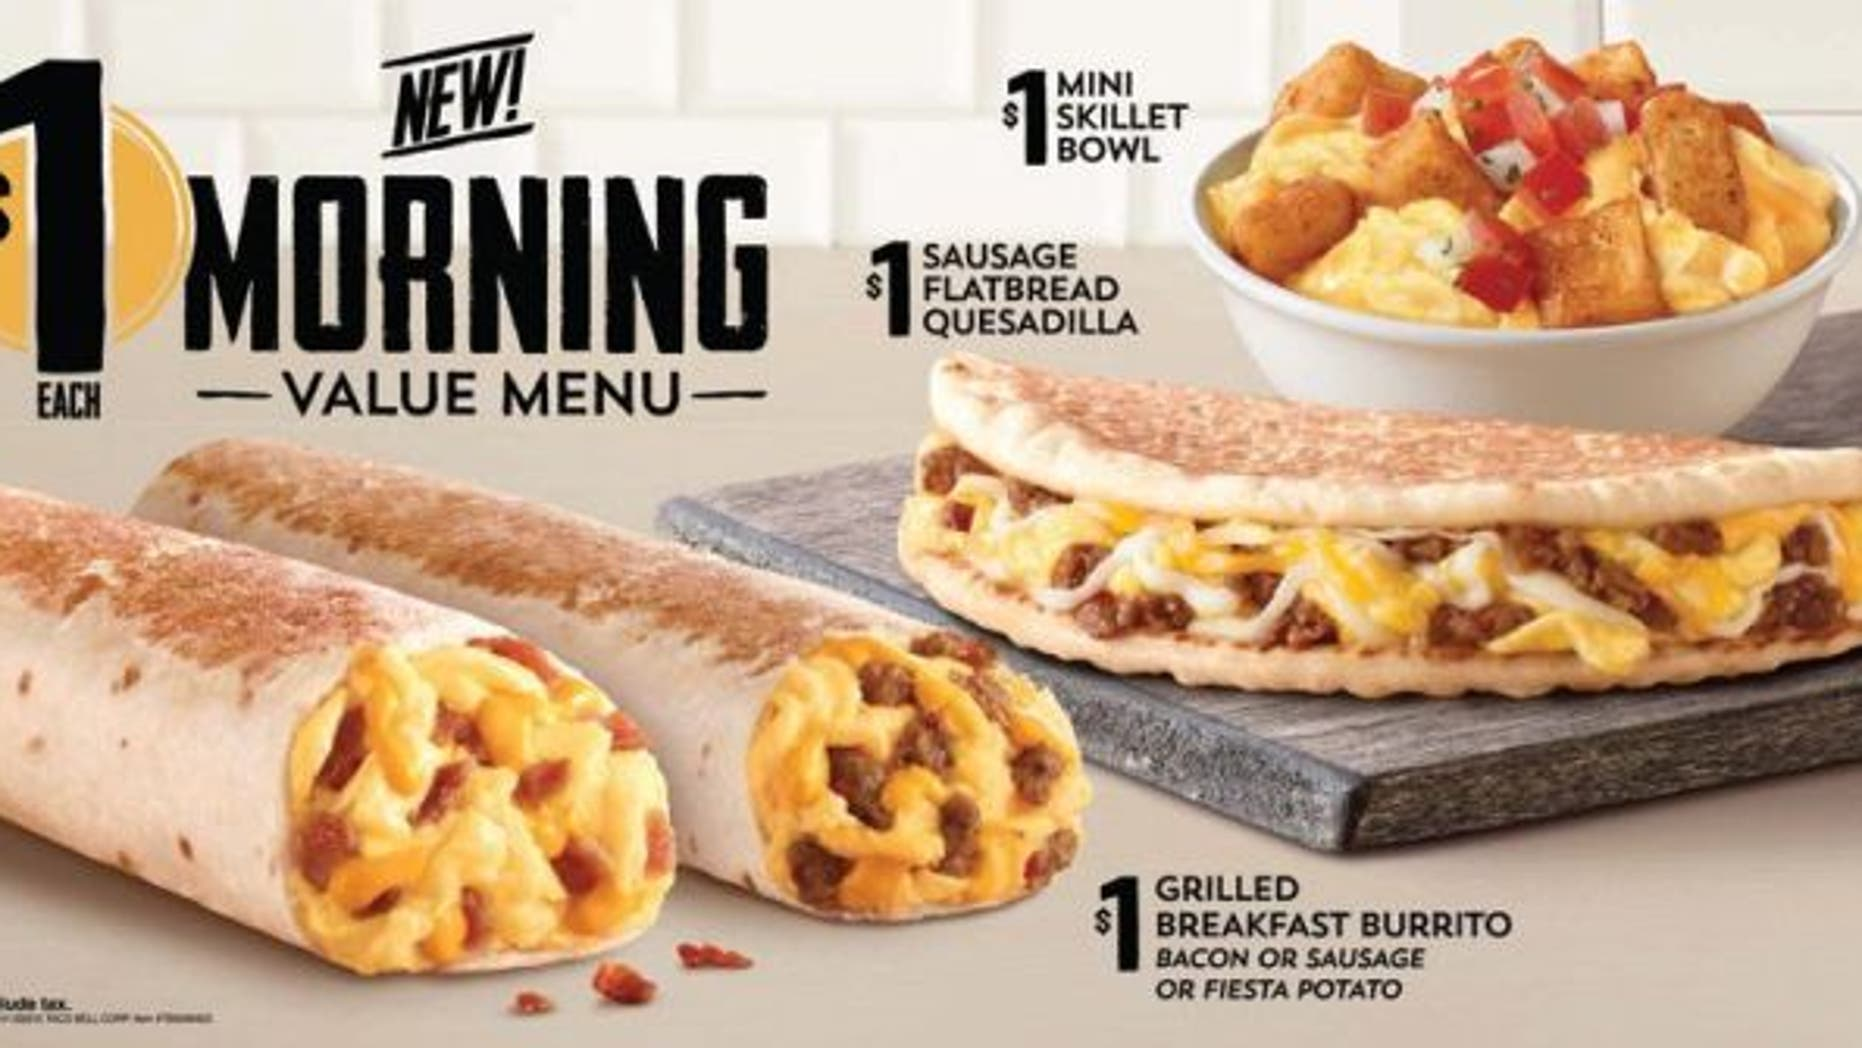 Taco Bell's new dollar menu features a slew of hearty breakfast items.